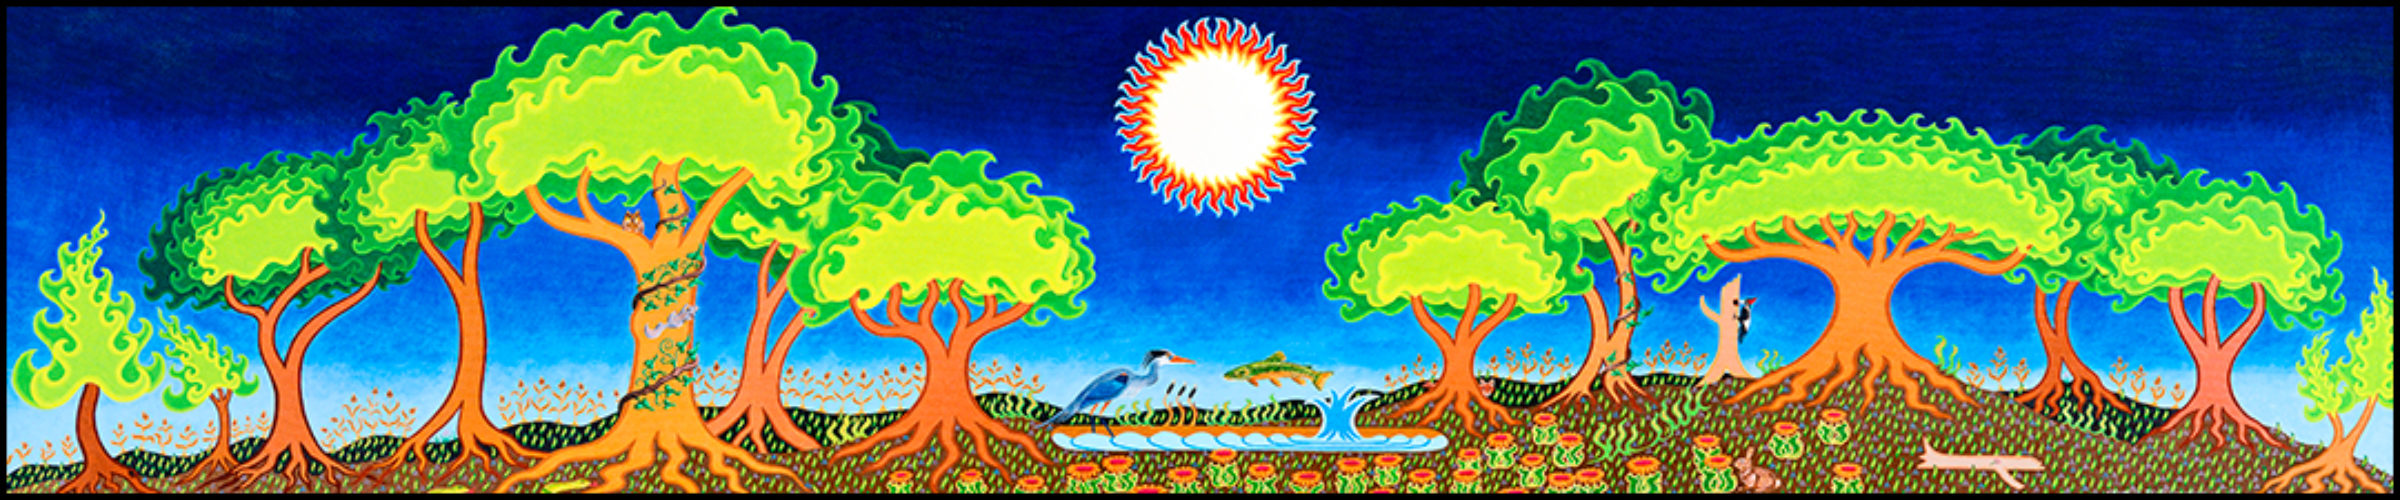 """A Small Miracle - Oil on canvas, 22"""" x 96"""", 2005-2006"""